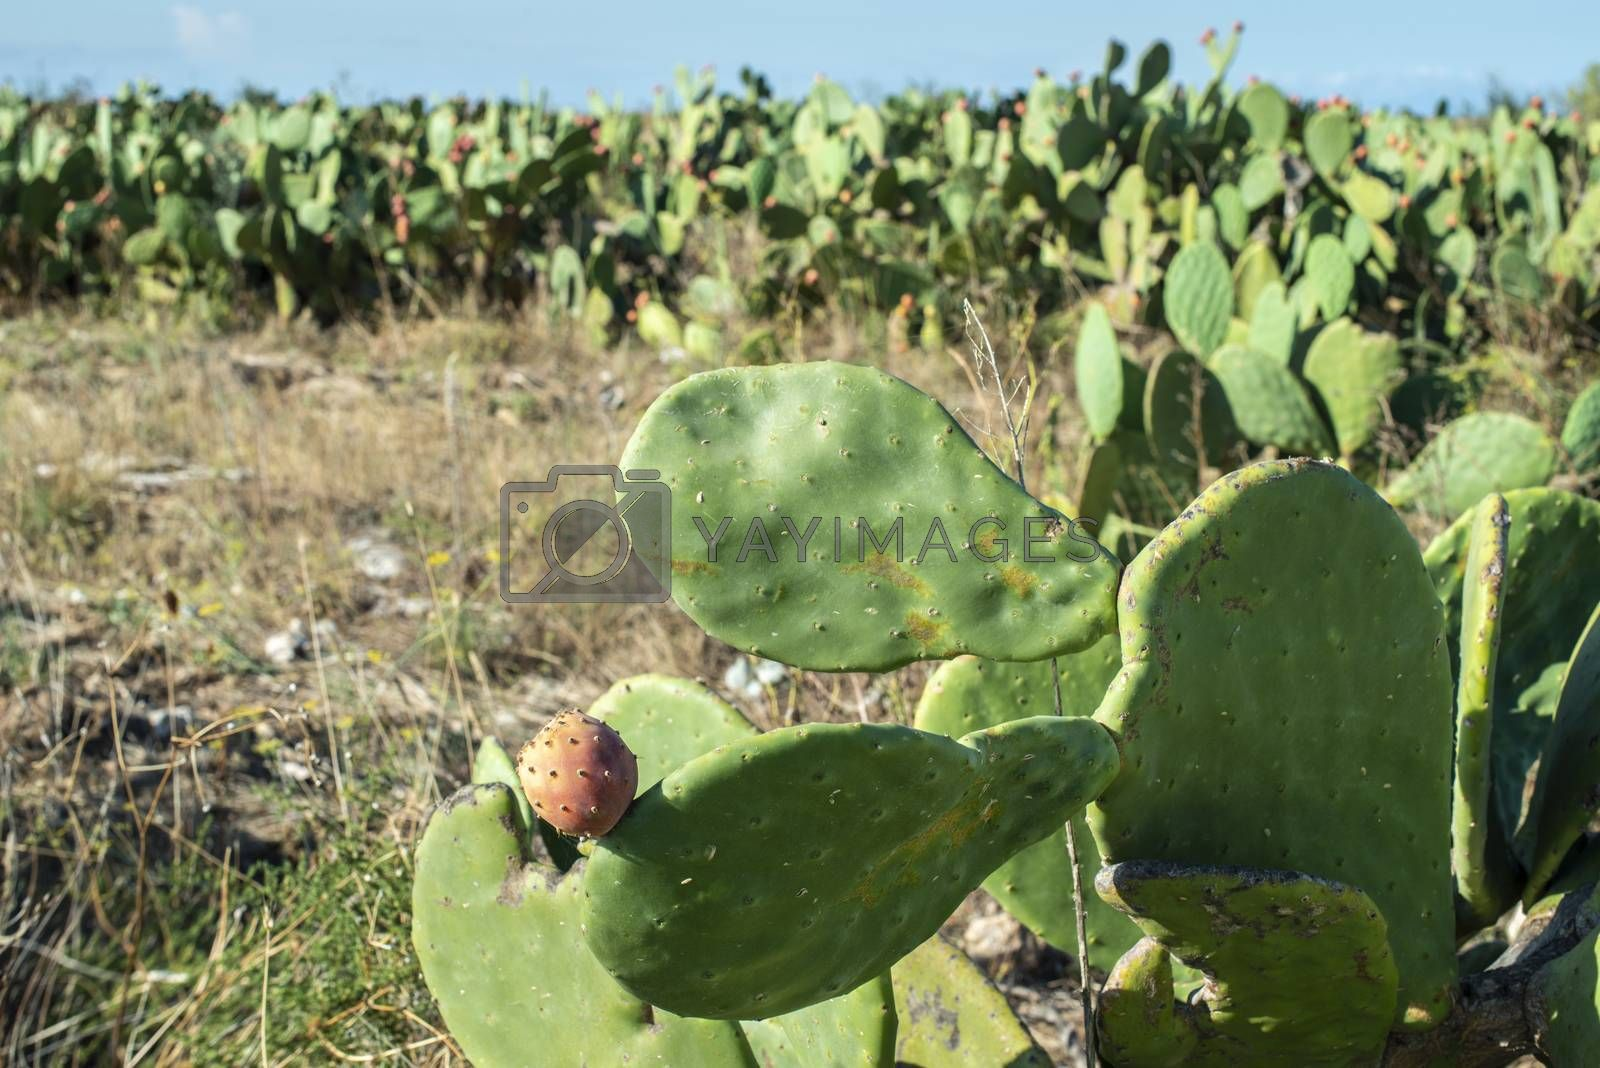 Industrial cactus plantation. Growing cactus. Fruits on cactus. Sunny day.